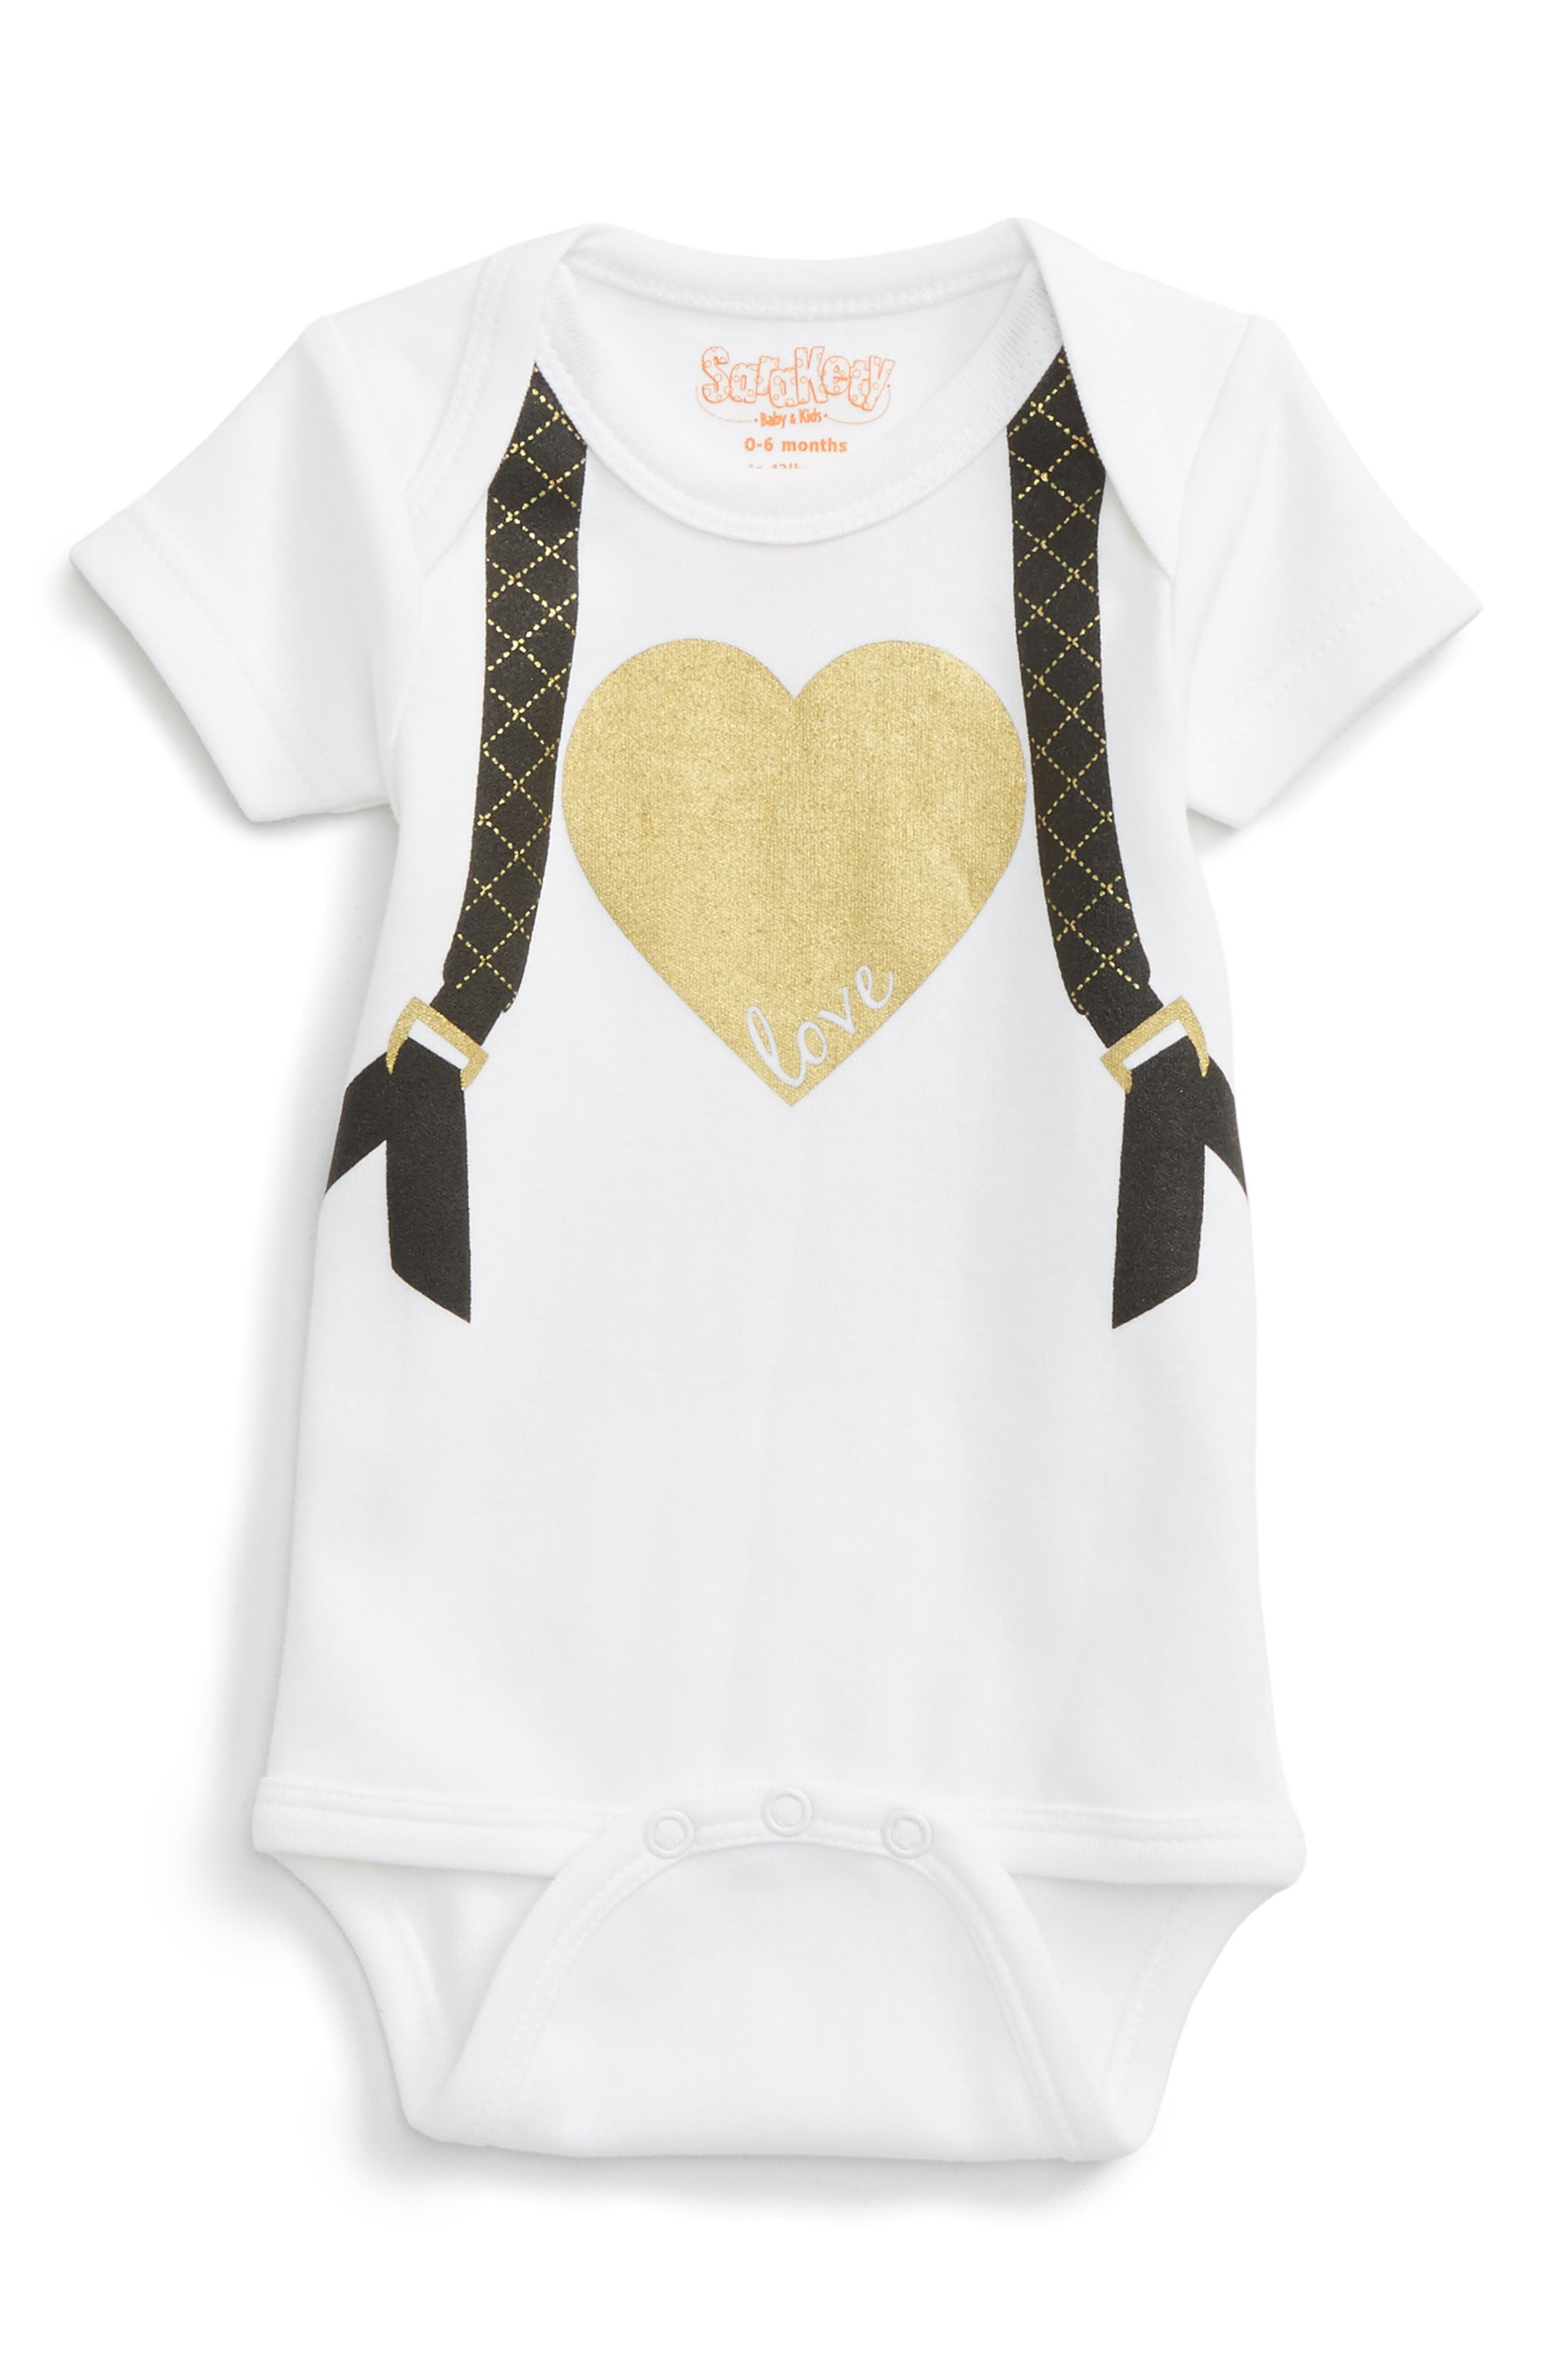 Alternate Image 1 Selected - Sara Kety Baby & Kids Quilted Backpack Bodysuit (Baby Girls)